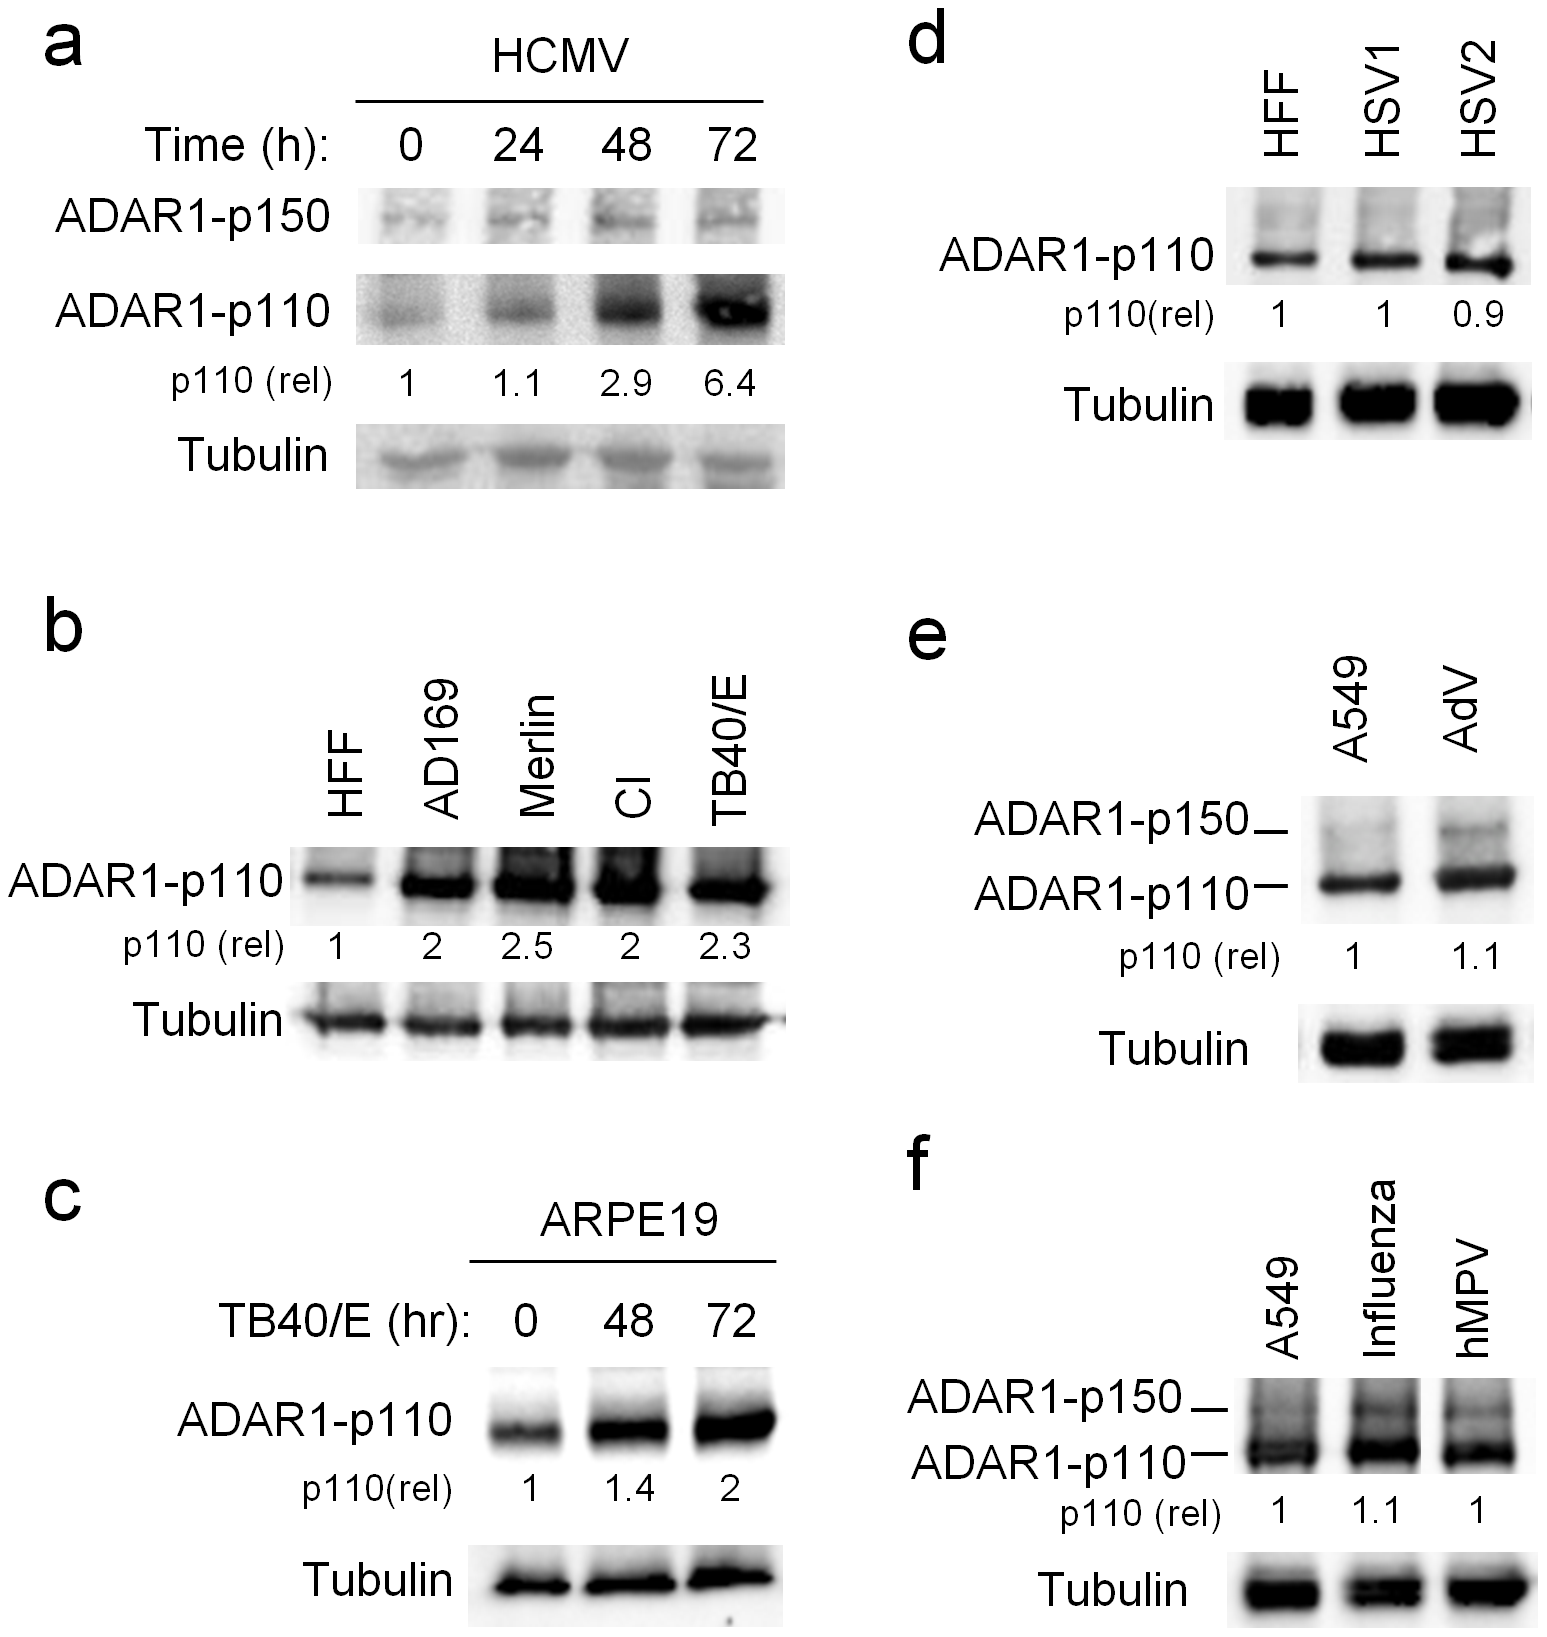 ADAR1-p110 is induced during HCMV infection.